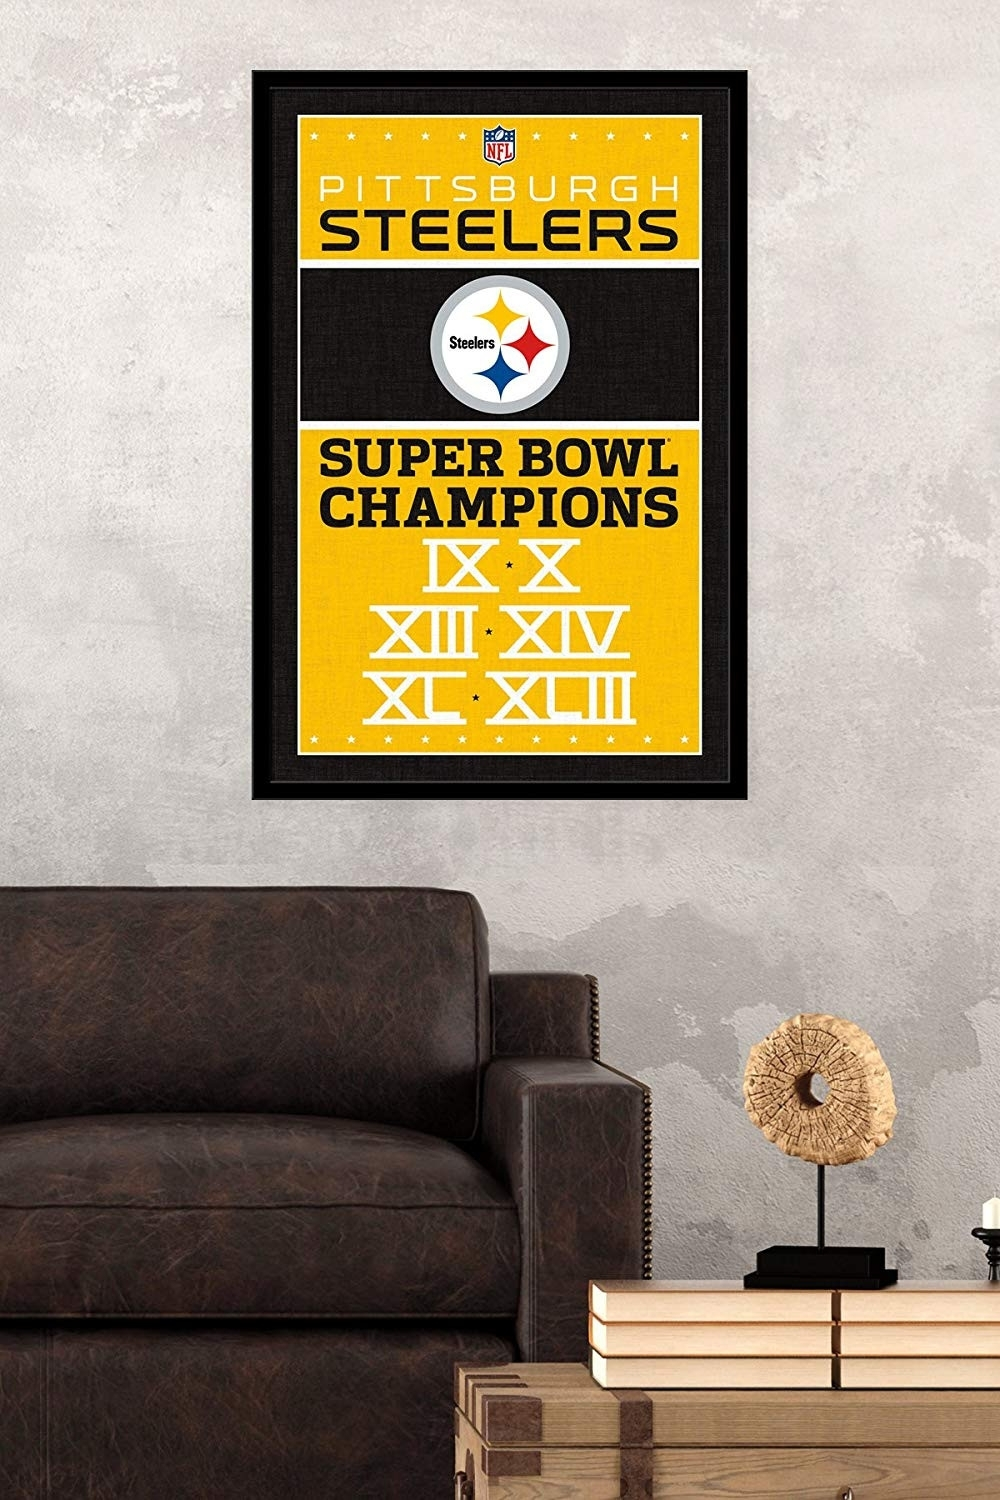 25 Unique Pittsburgh Steelers Wall Art | Mehrgallery With Regard To Most Popular Nfl Wall Art (View 2 of 15)